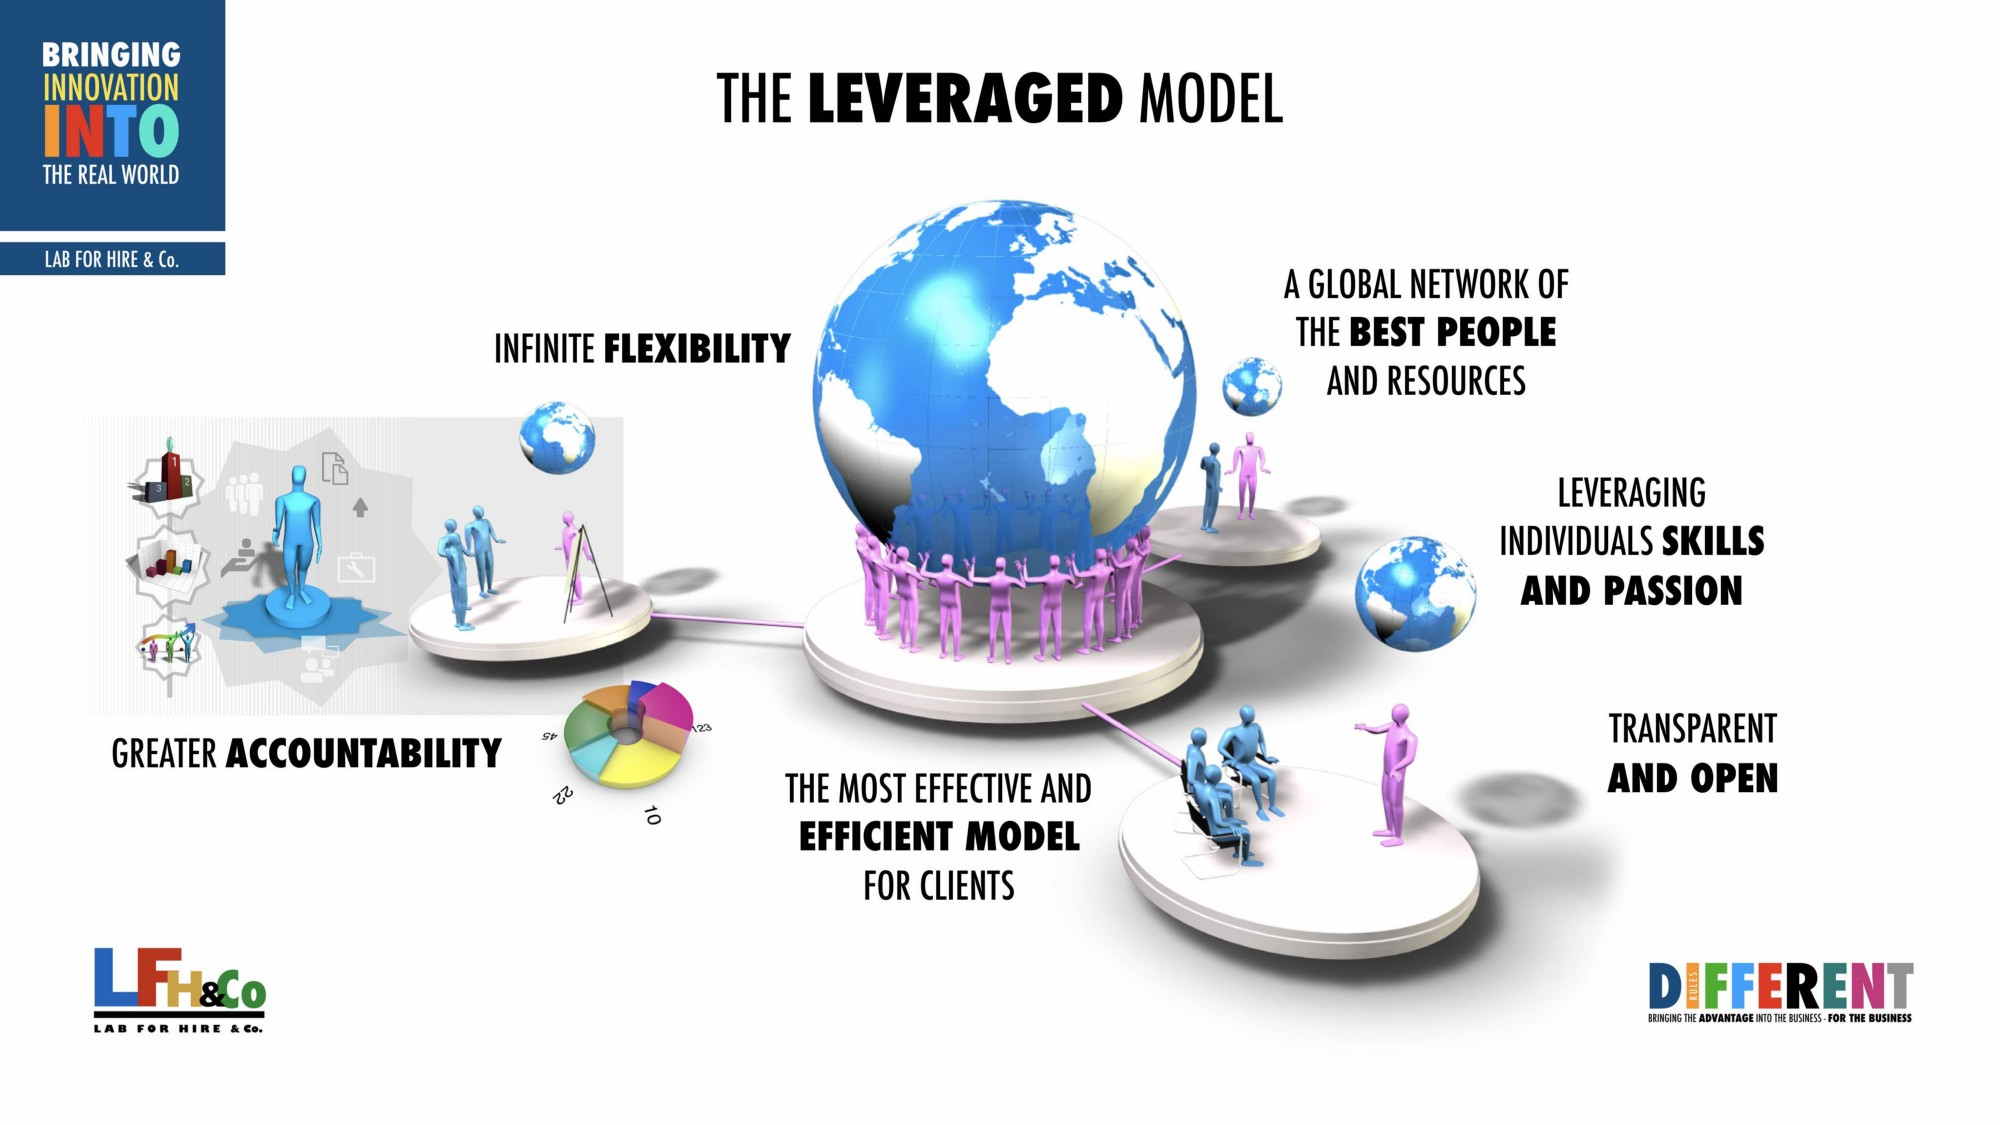 Click The Image To Read More About The Power Of Leverage